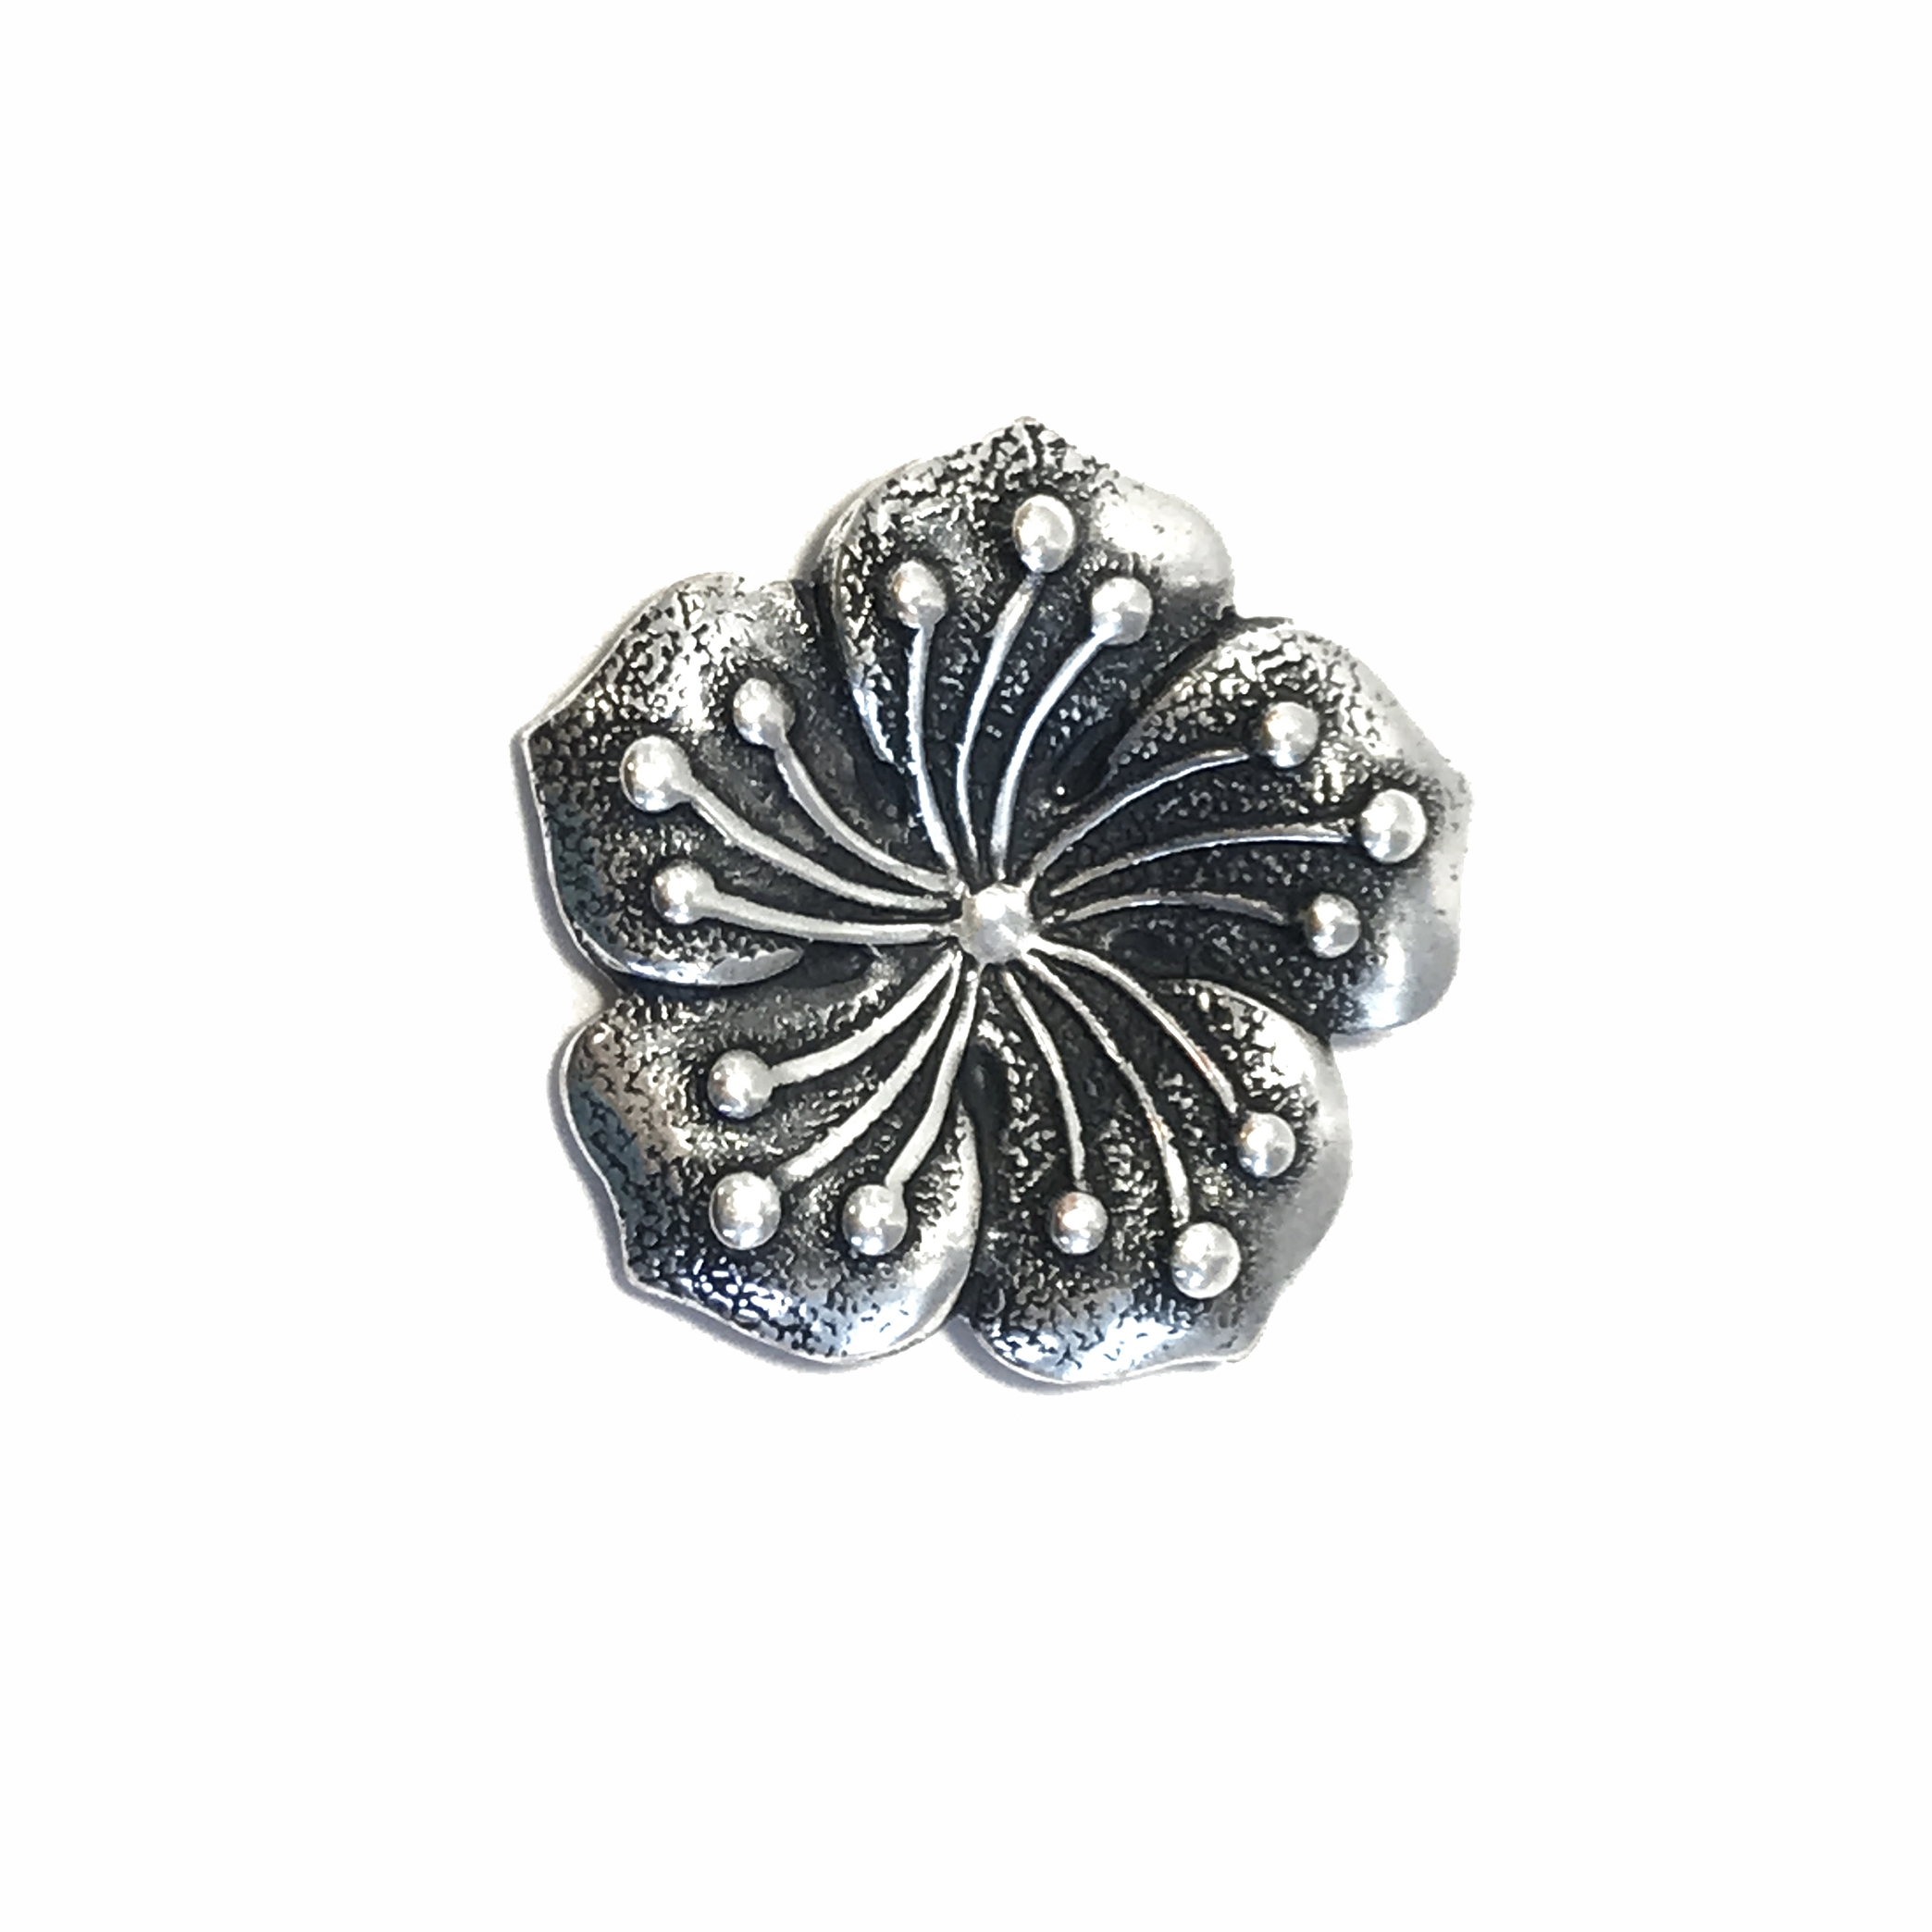 brass flower stamping, silver, 01016, flower stampings, US-made, Bsue Boutiques, nickel-free, floral stamping, dapt flower stamping, silverware silverplate, black antiquing, five-petal flower